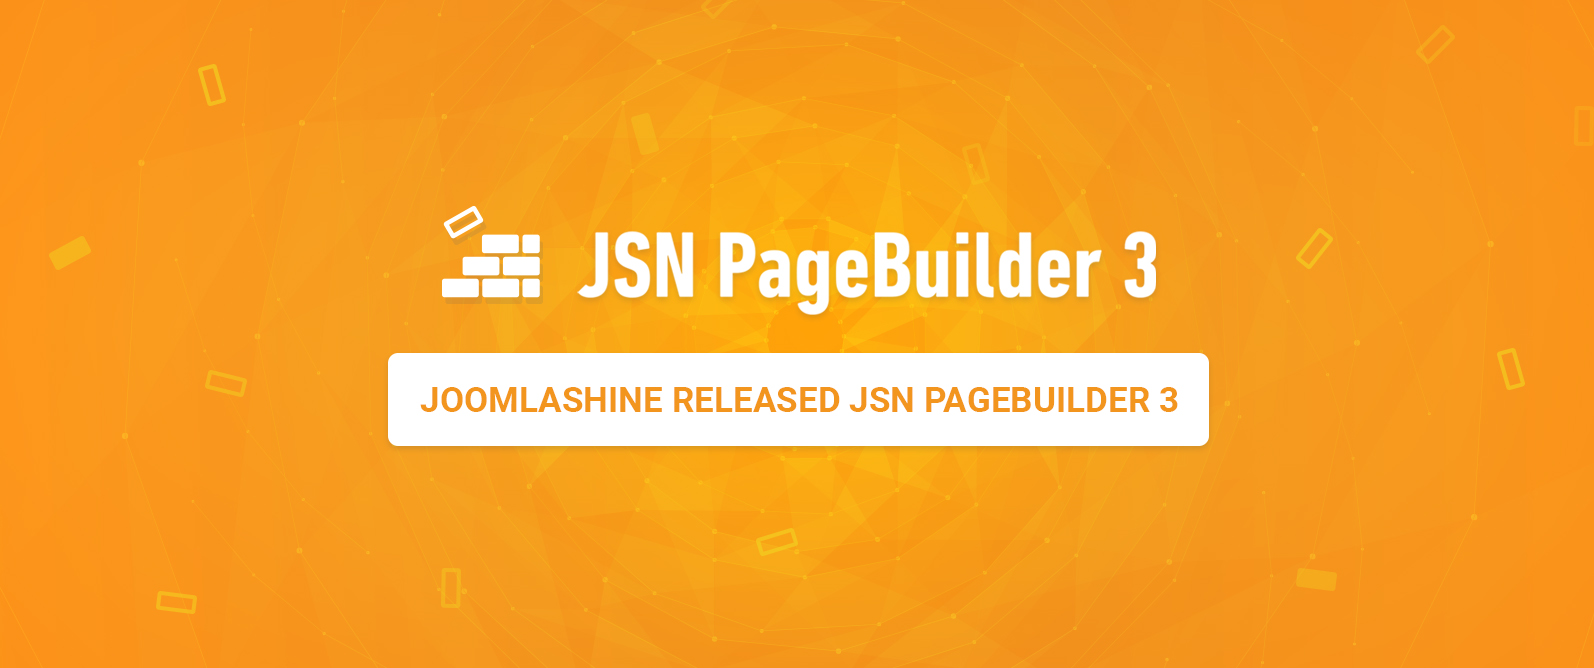 -JoomlaShine-released-JSN-PageBuilder-3